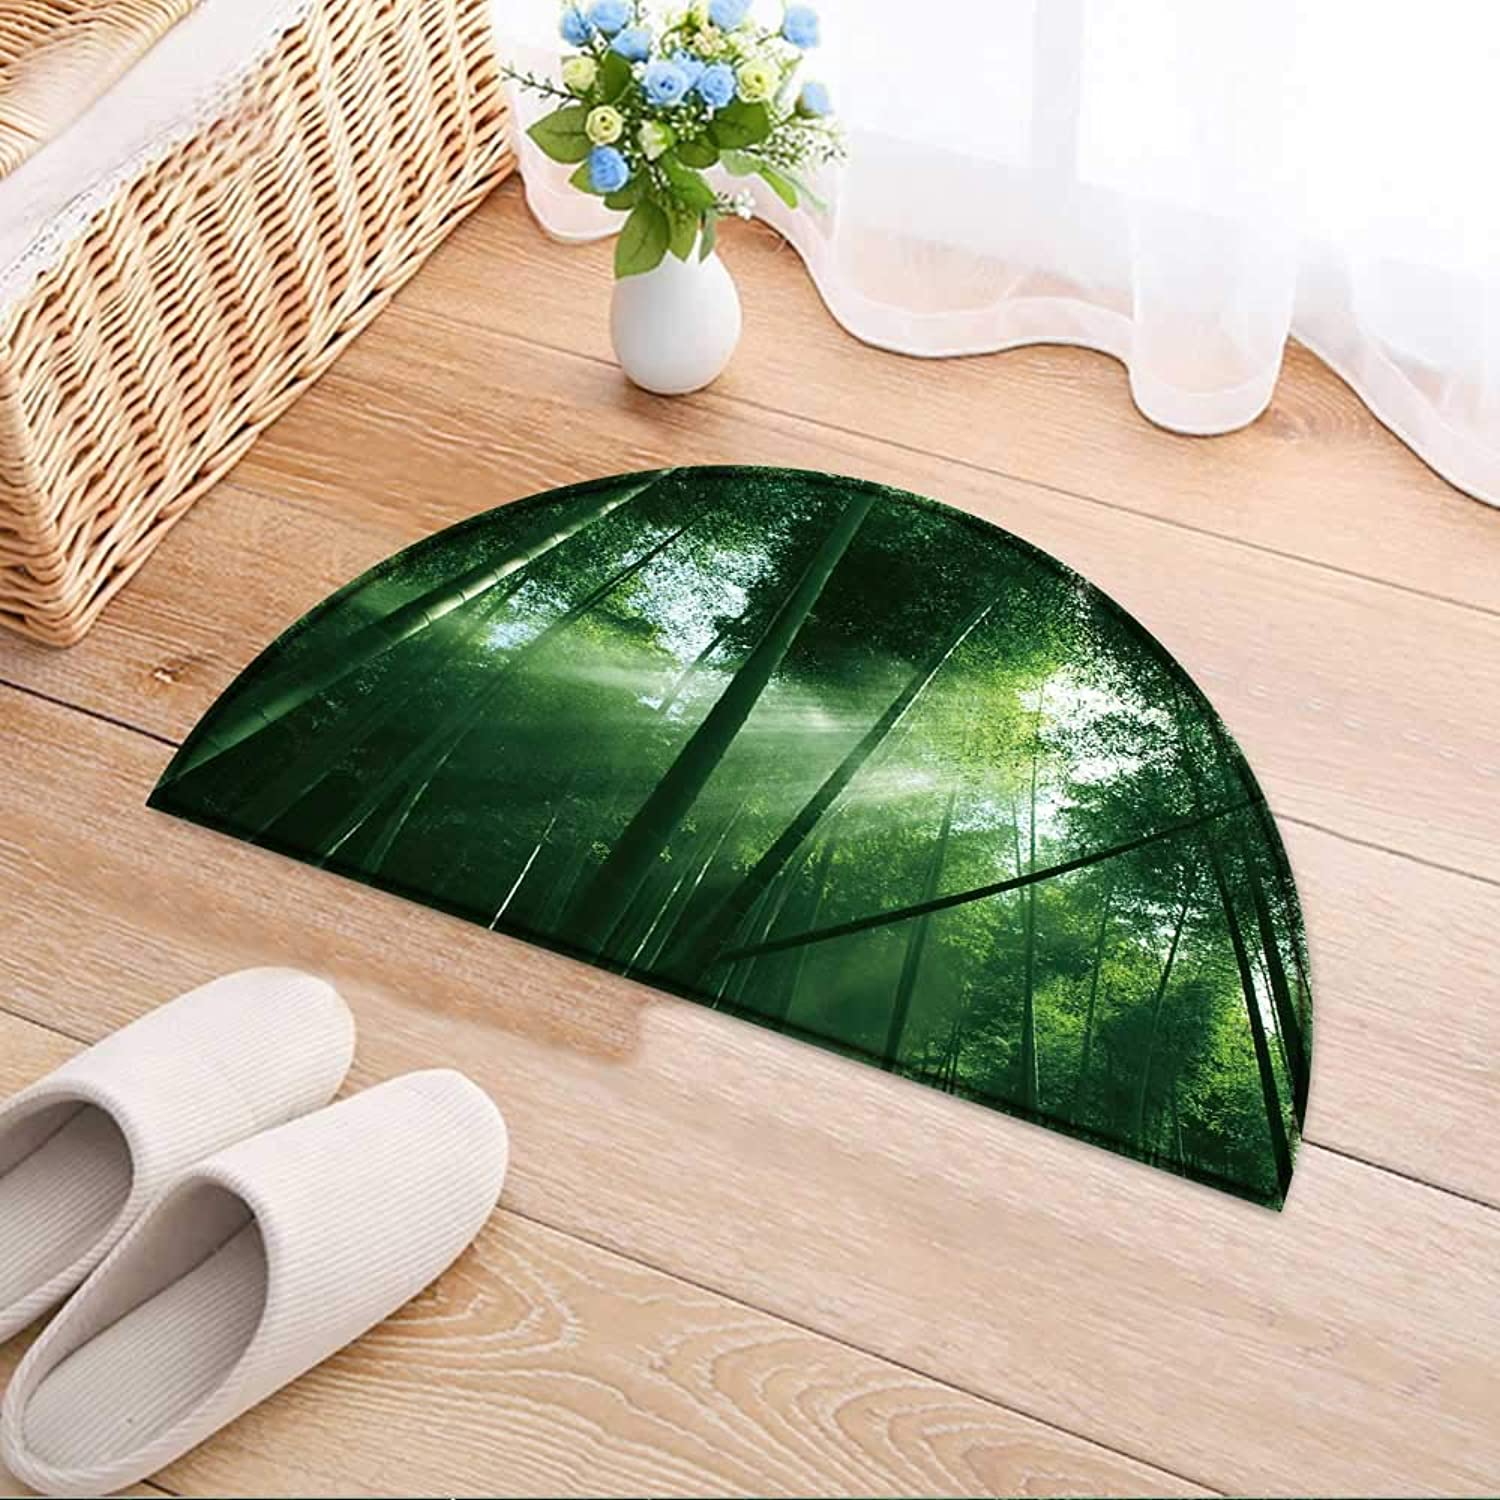 Semicircle Rug Kid Carpet The Flourish Bamboo Forest with Glorious Morning Sunshine. Home Decor Foor Carpe W39 x H28 INCH